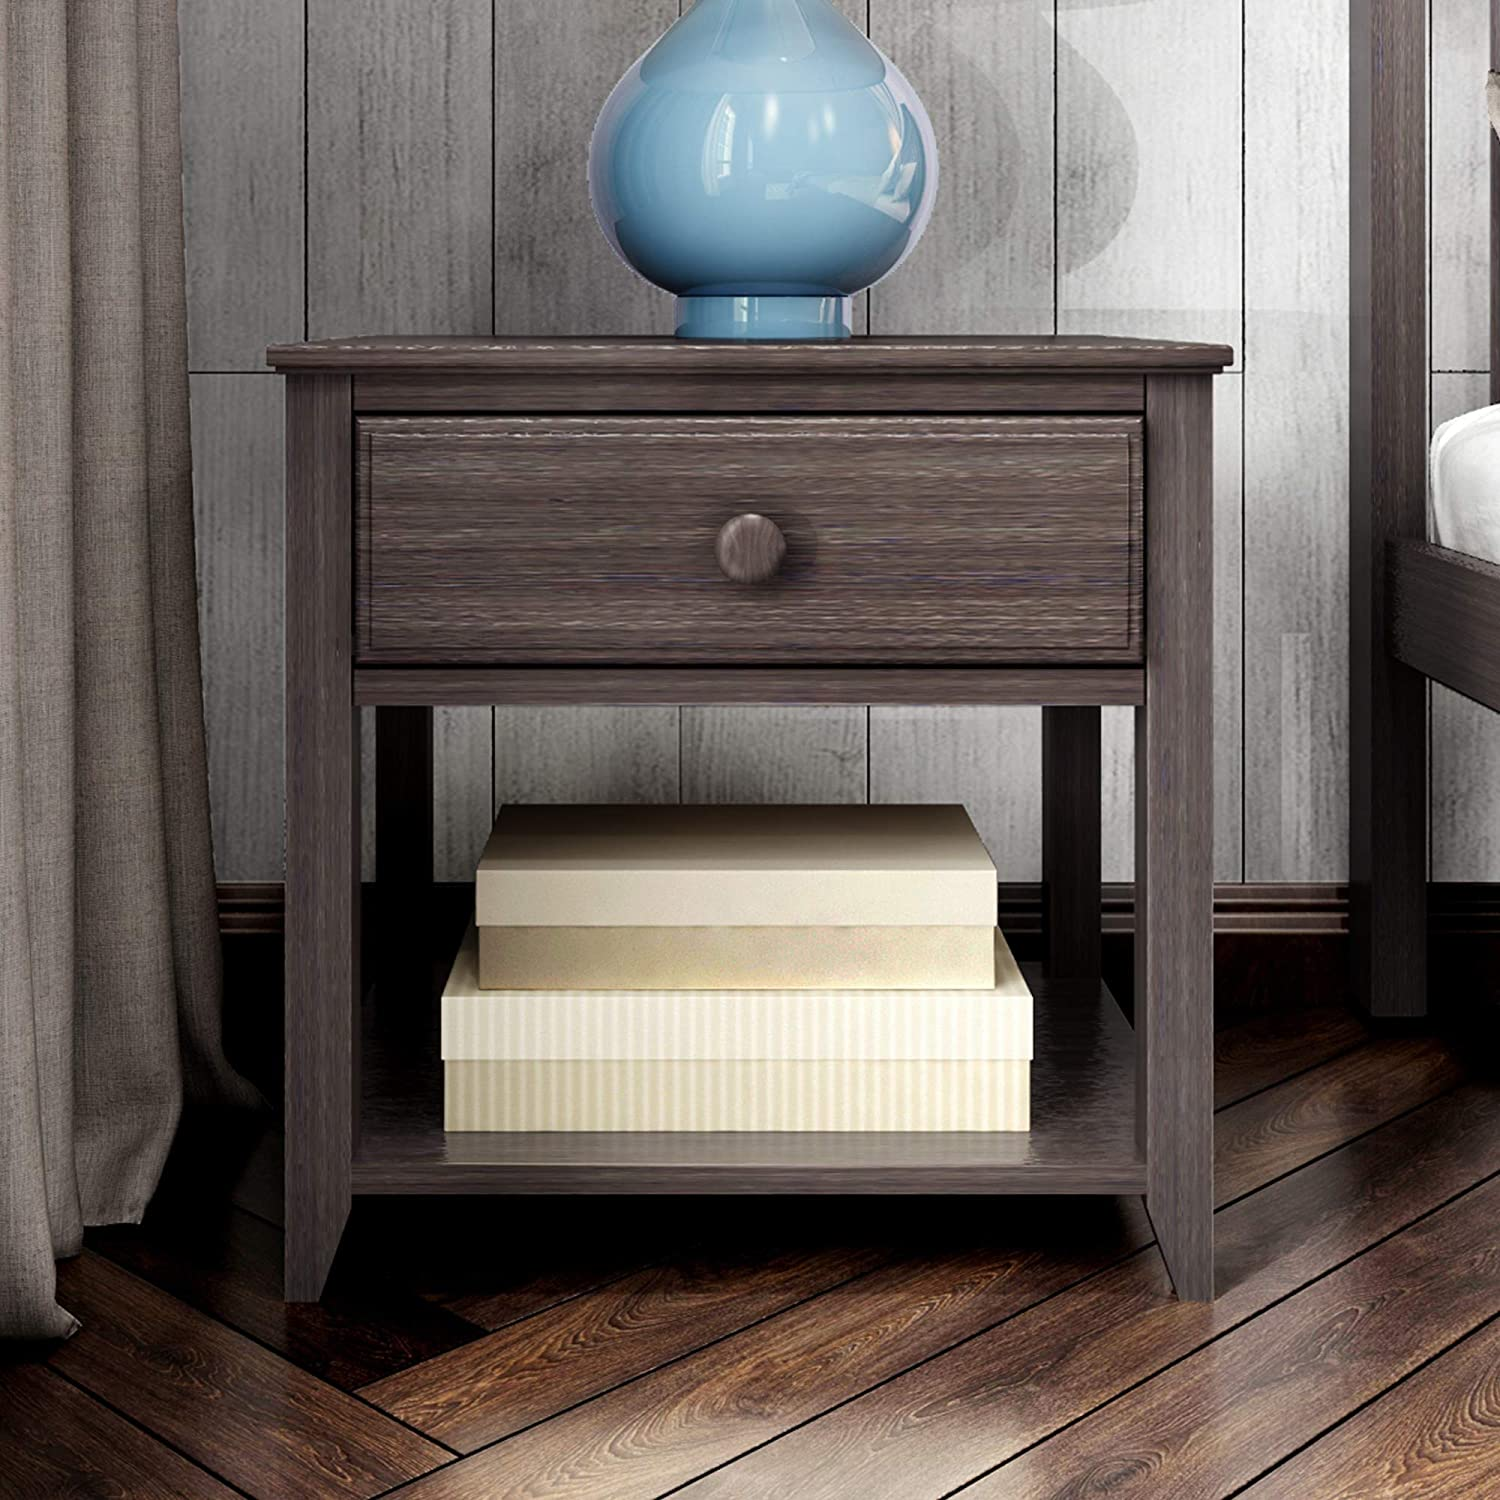 Max & Lily Nightstand with Drawer and Shelf, Clay